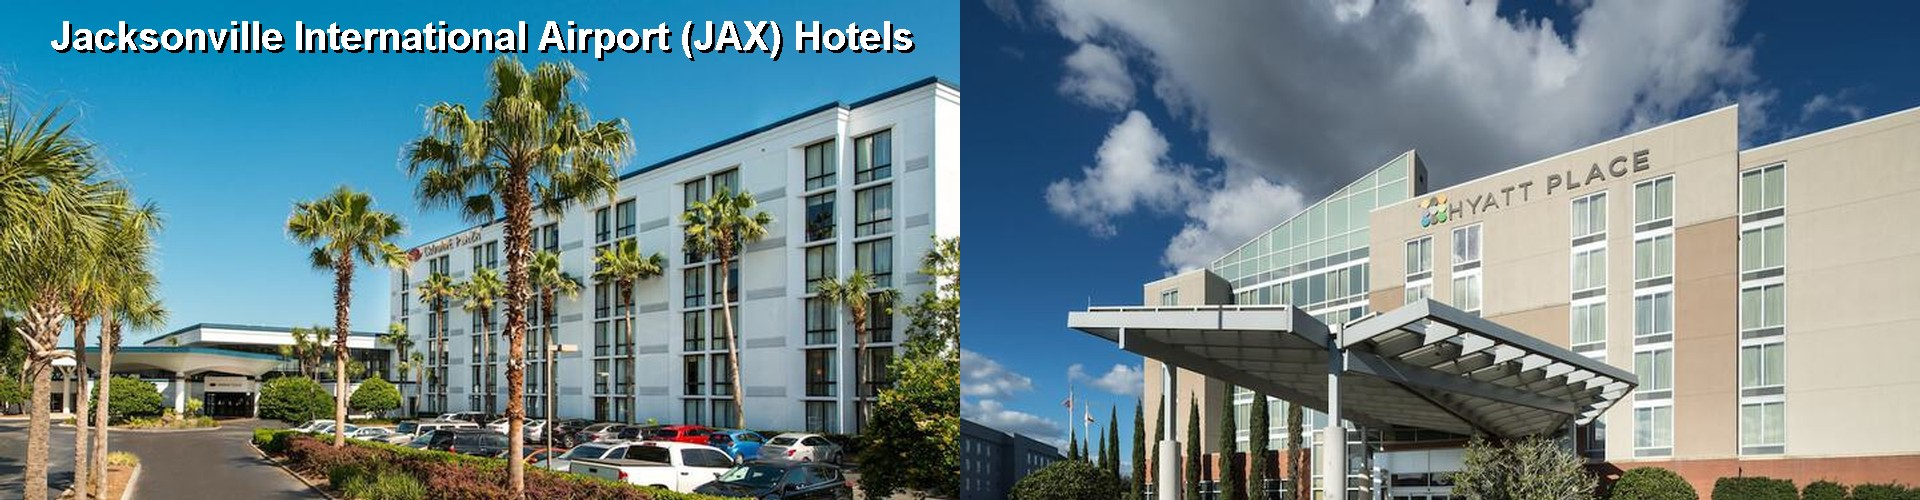 5 Best Hotels near Jacksonville International Airport (JAX)